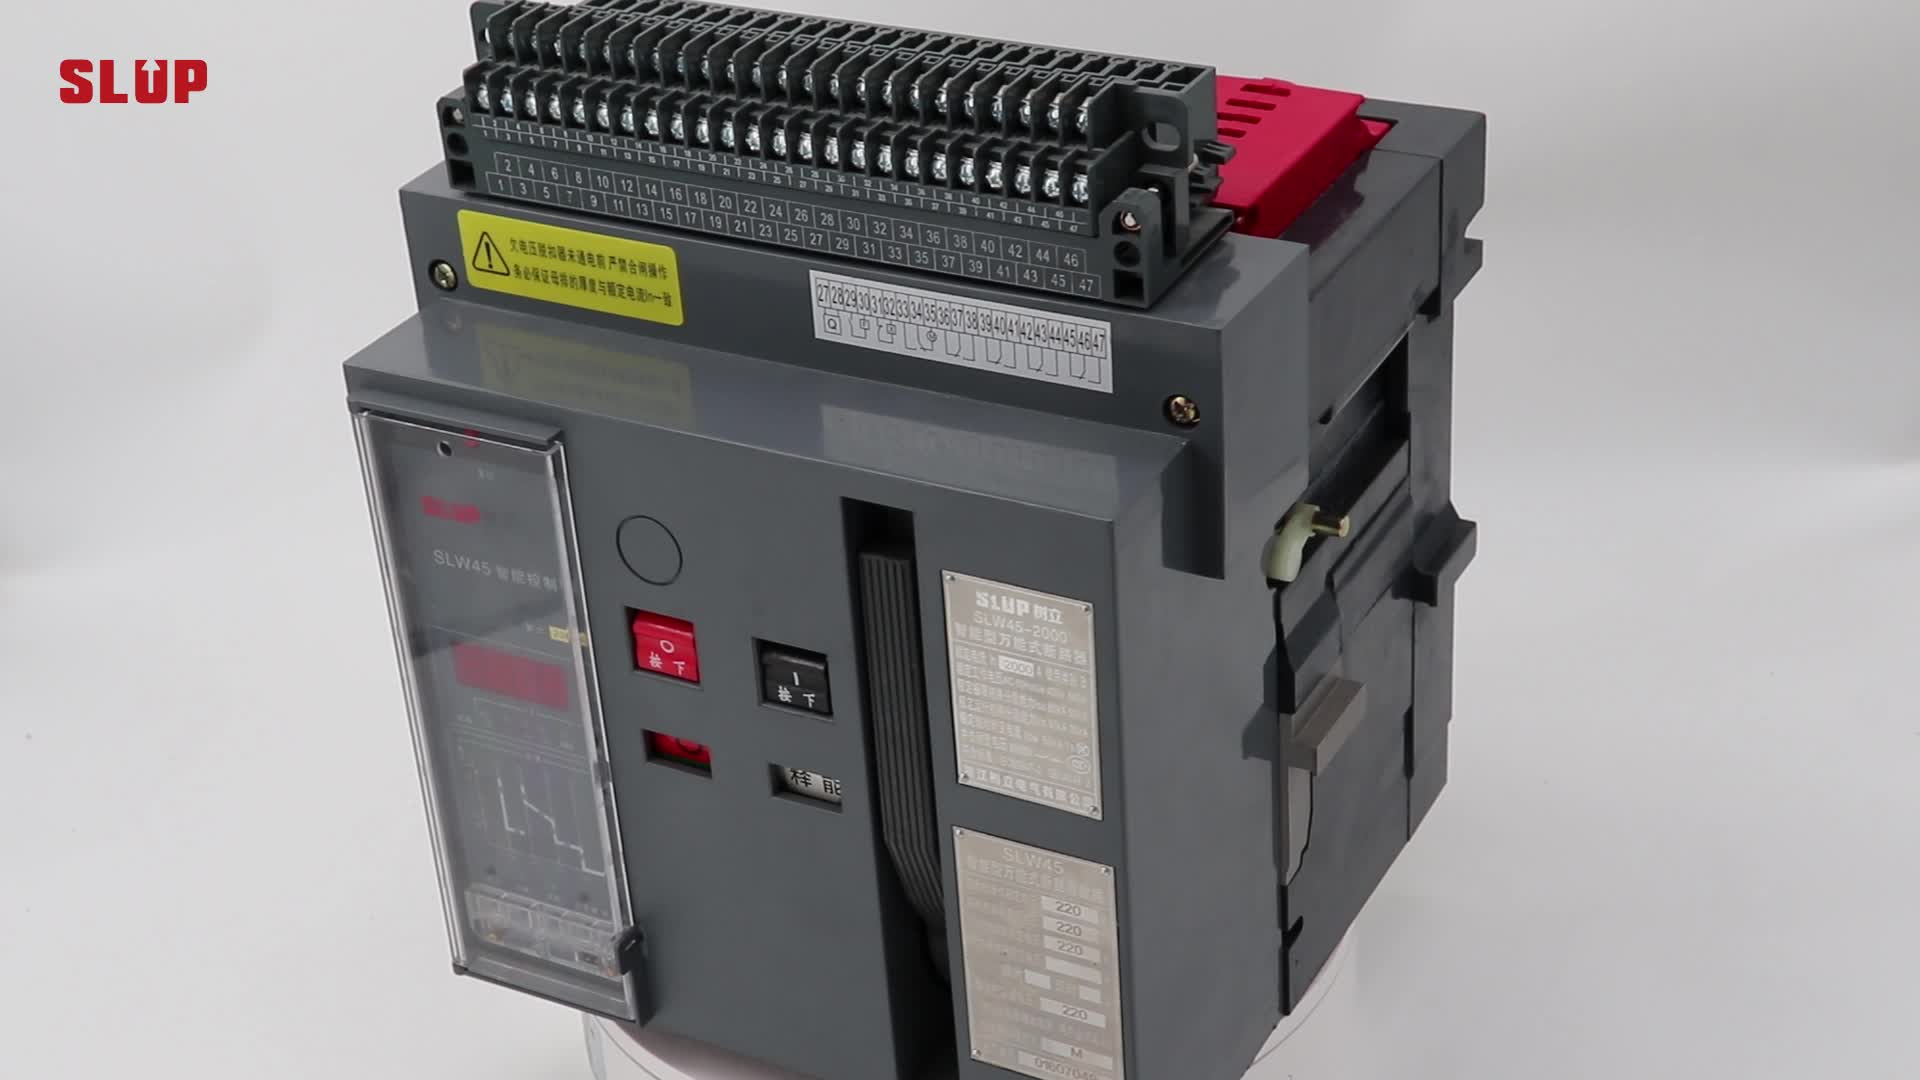 SLW45 Type acb Intelligent Universal 630A air circuit breaker 1250a 2000a